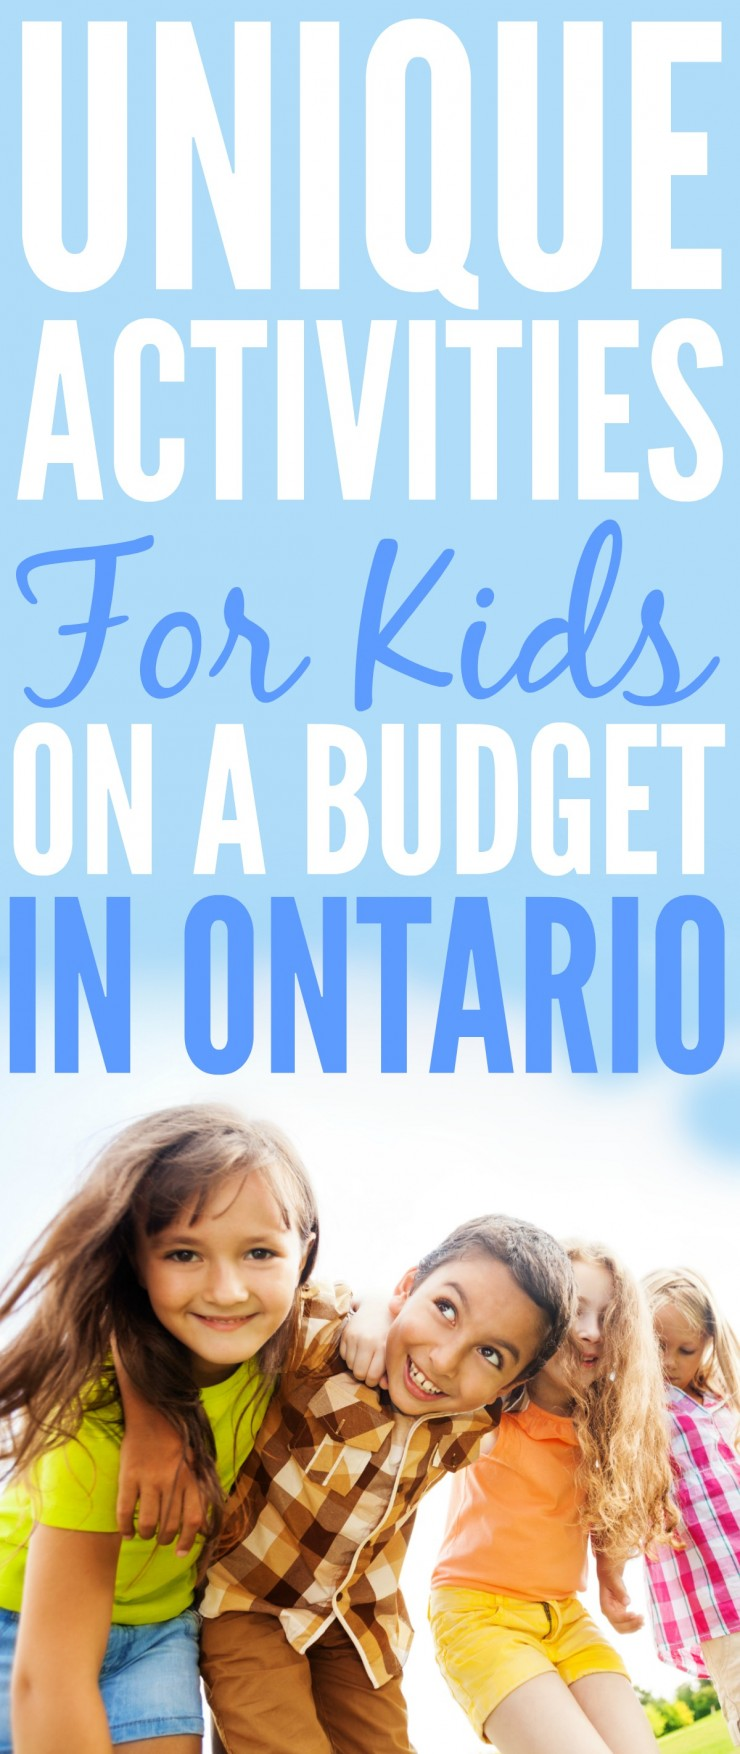 Treating your kids to fun, affordable activities can be a challenge! Your pocketbook doesn't have to suffer in Ontario with these Unique Activities for Kids on a Budget